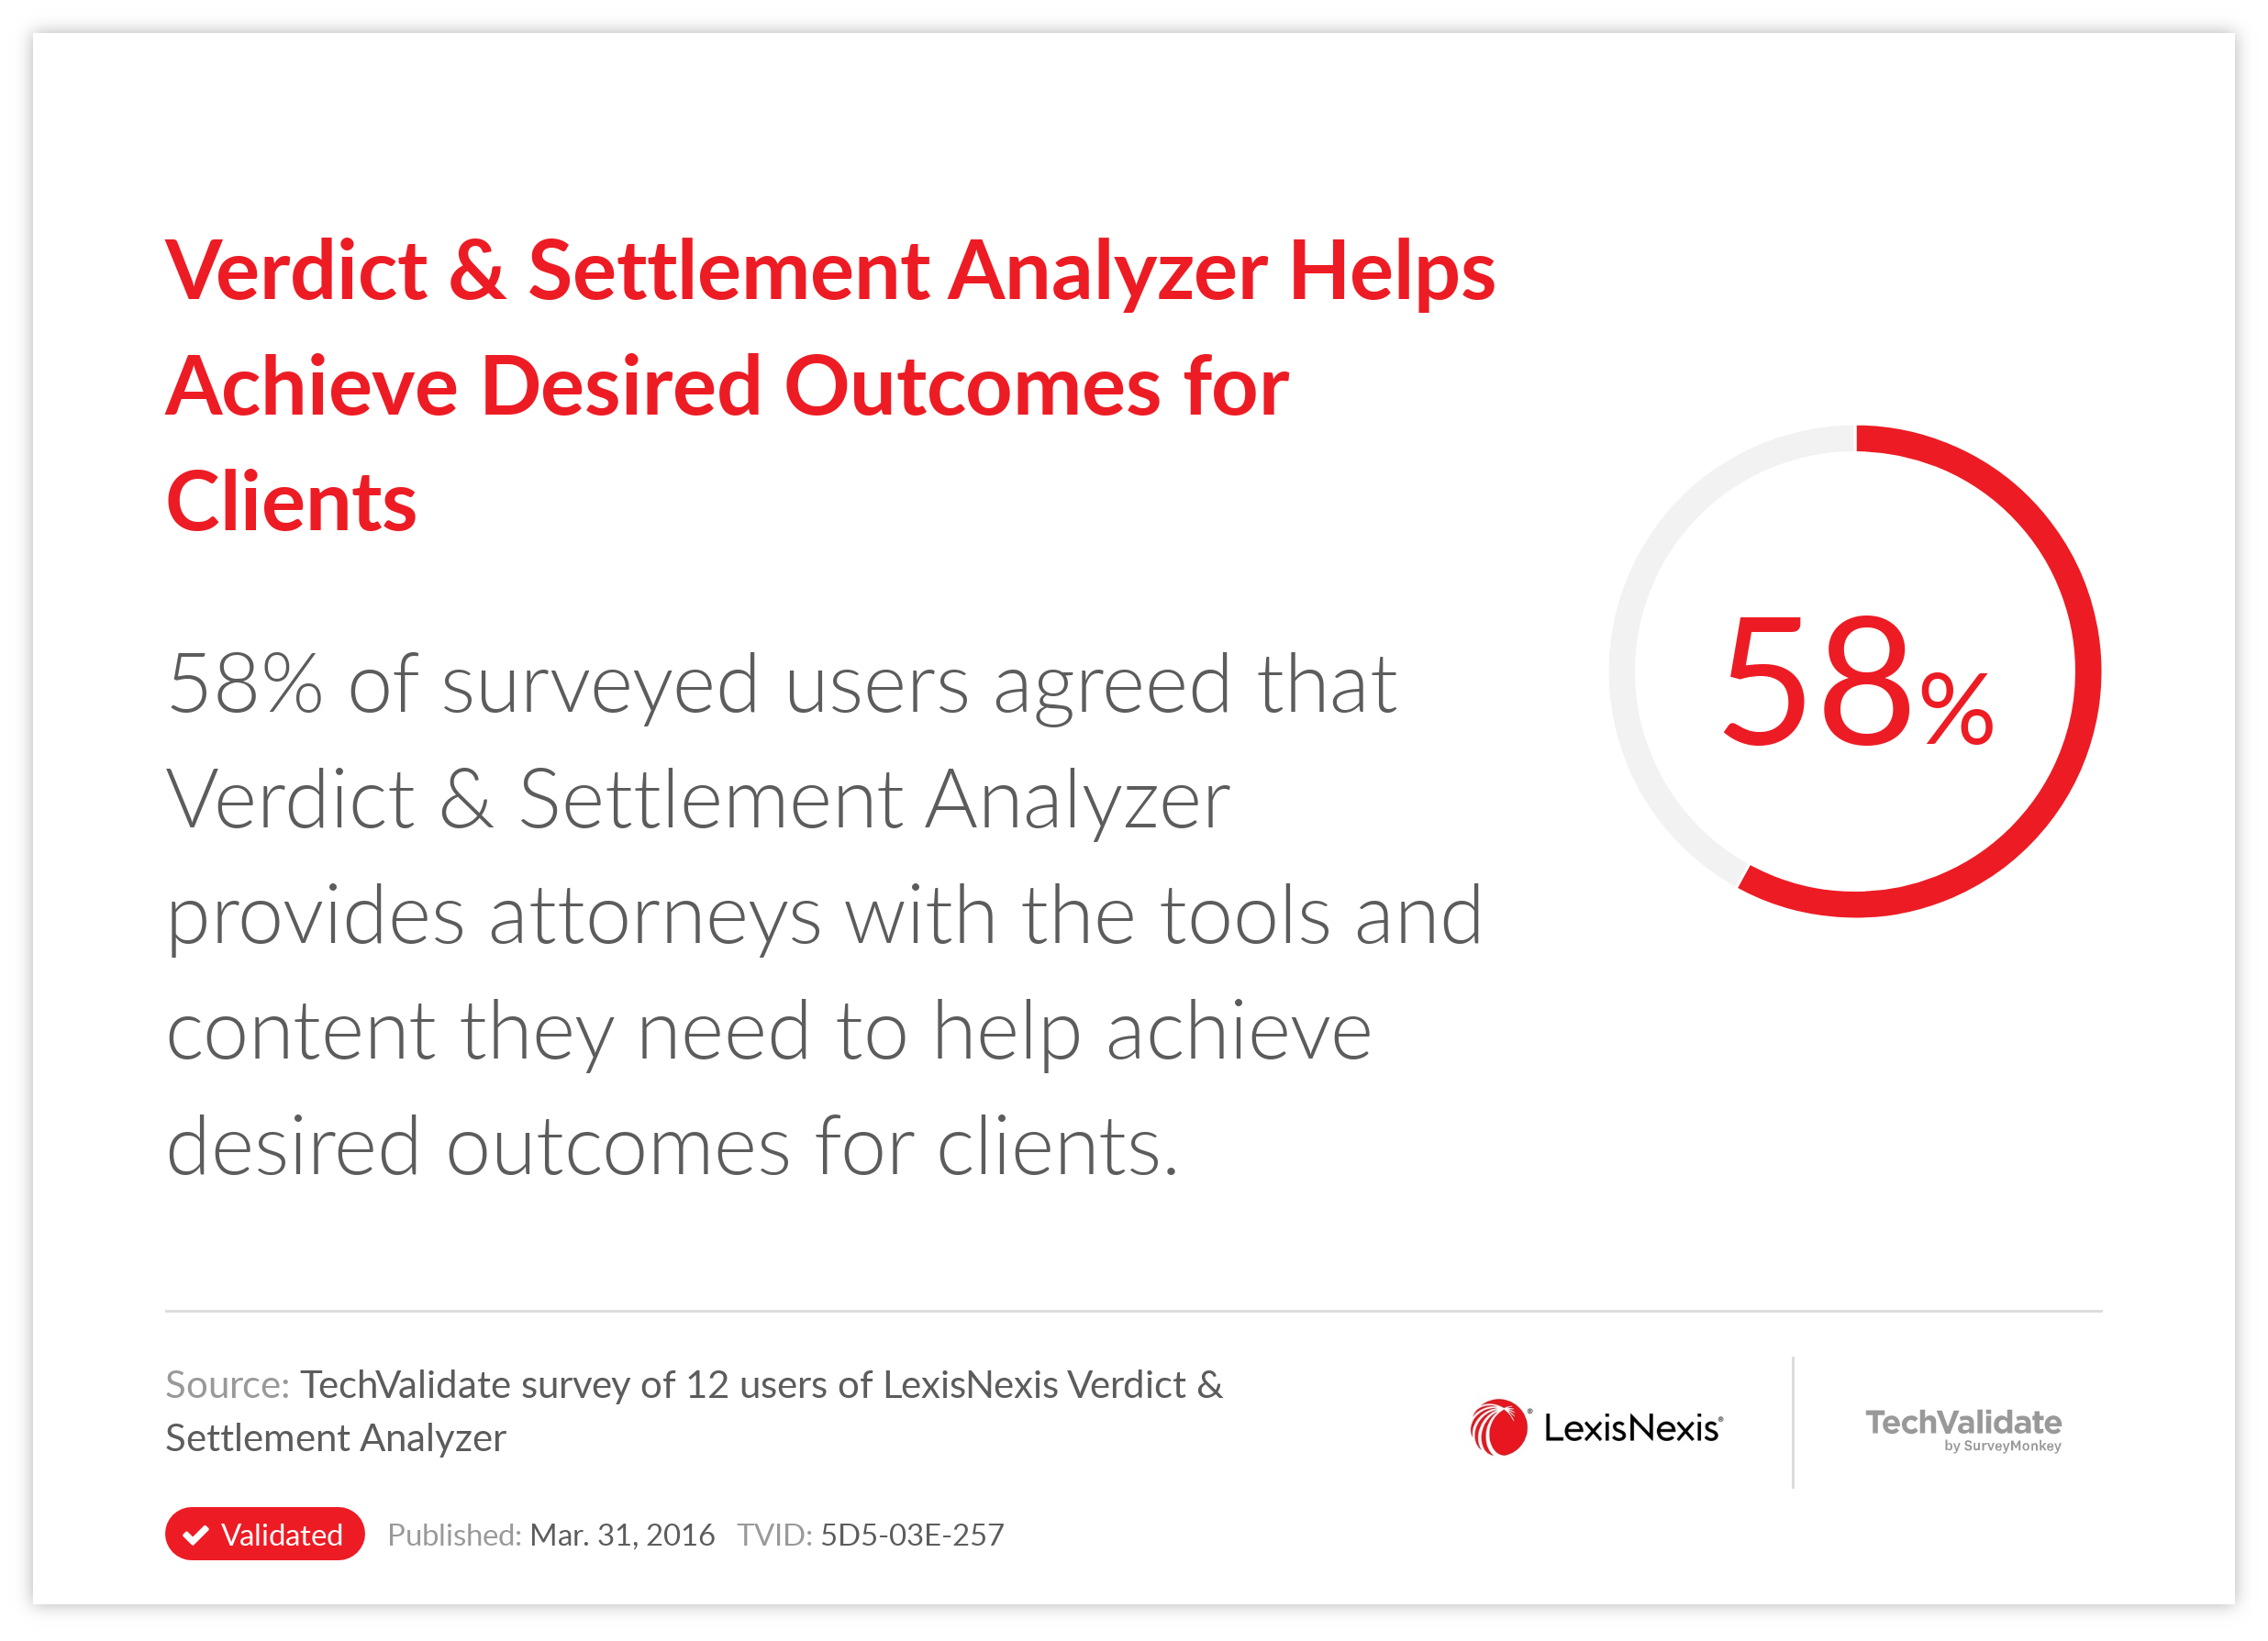 Verdict & Settlement Analyzer Helps Achieve Desired Outcomes for Clients